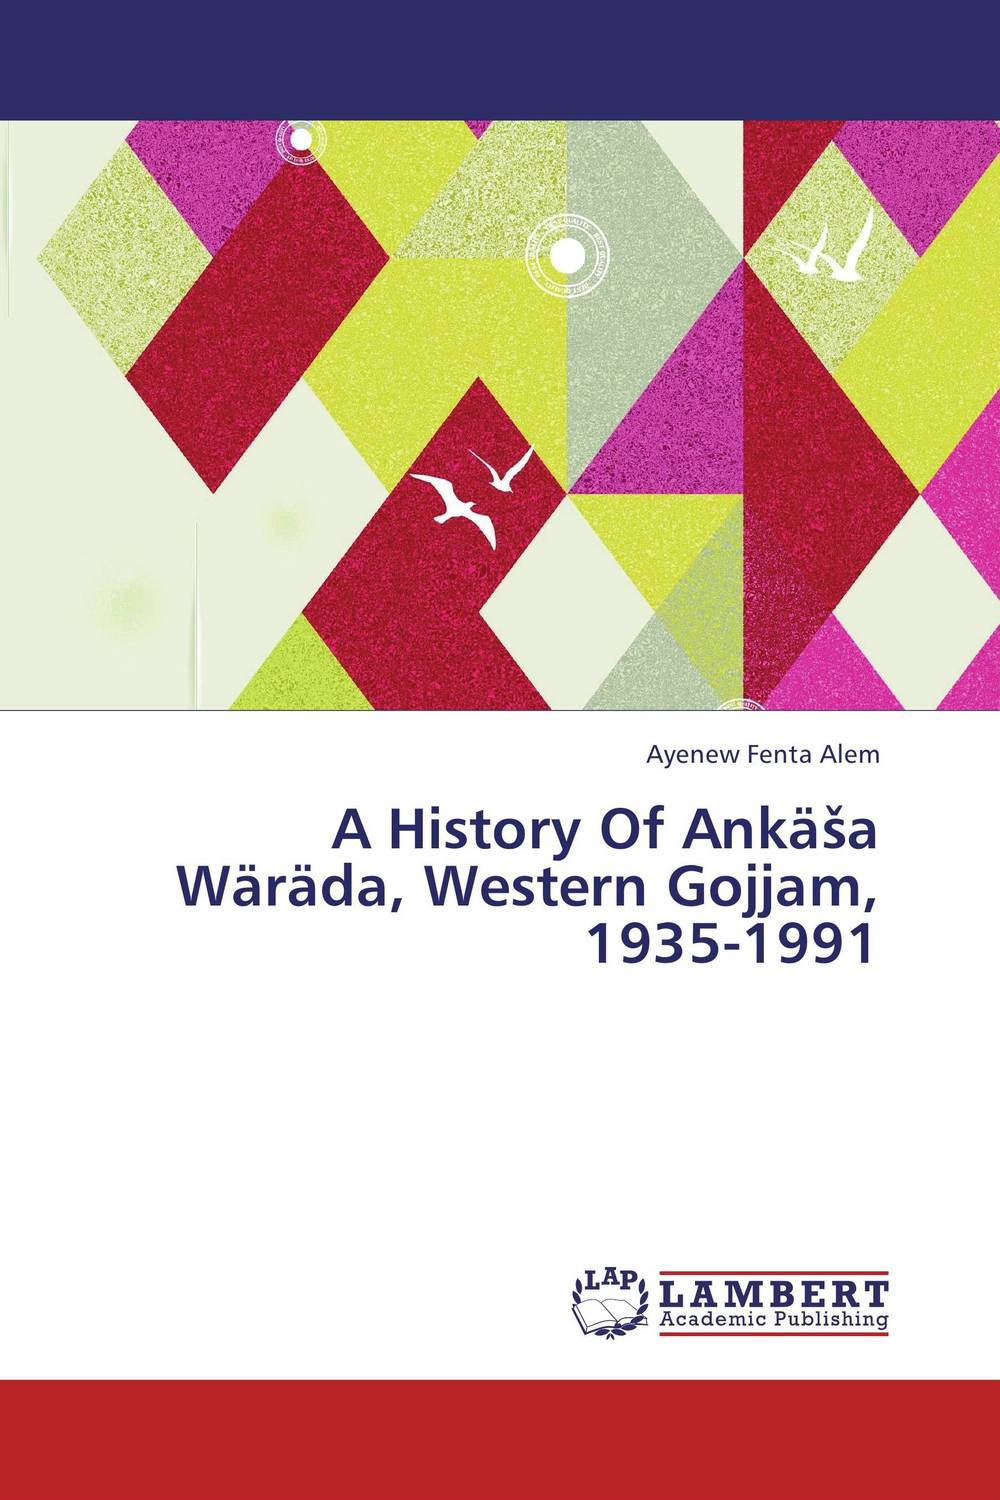 "A History Of Ankasa Warada, Western Gojjam, 1935-1991 freedom a documentary history of emancipation 1861a€""1867 2 volume set"